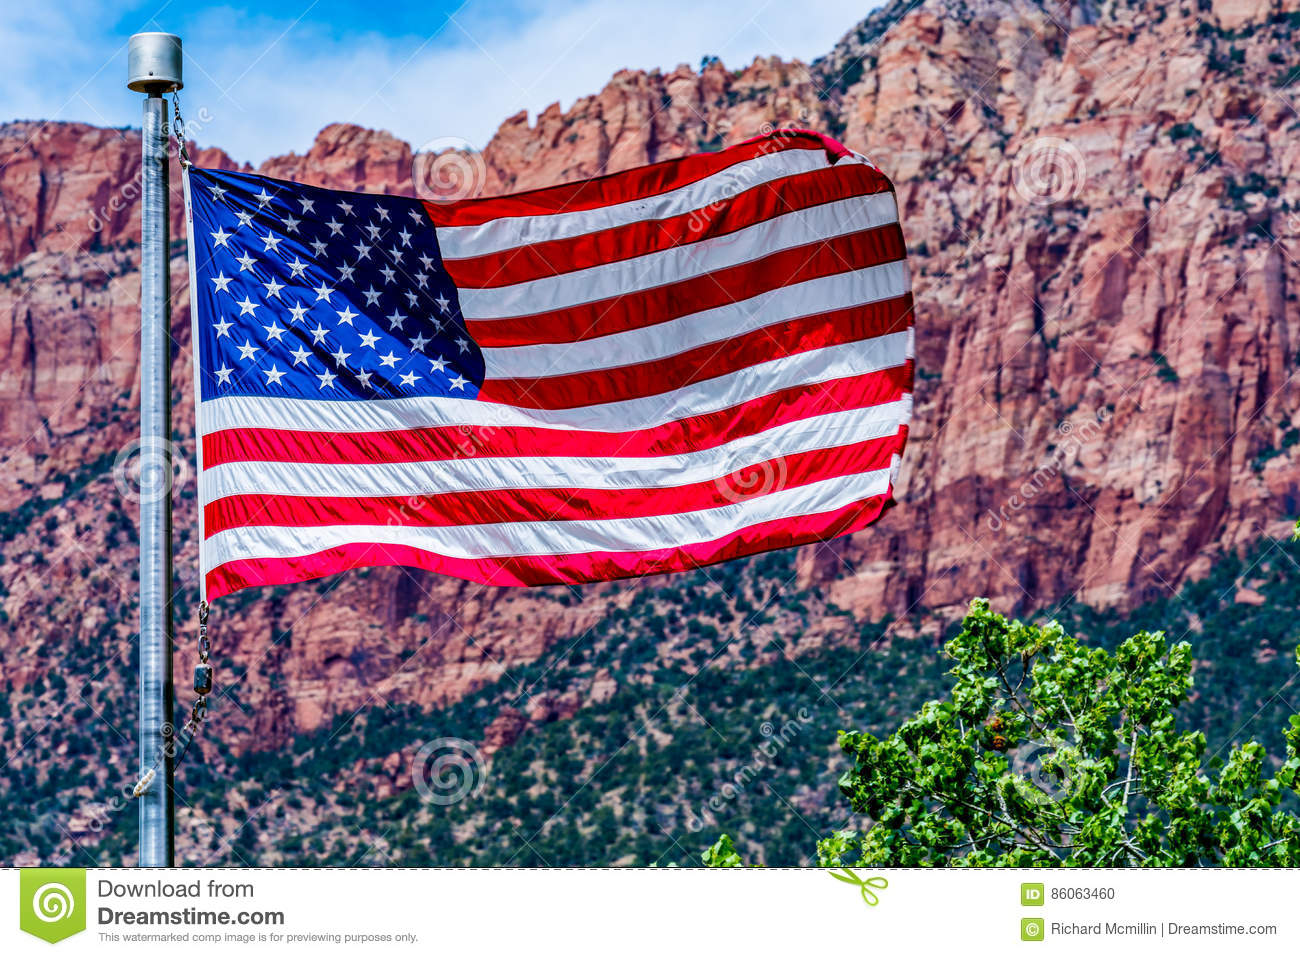 American Flag in National Park, USA.